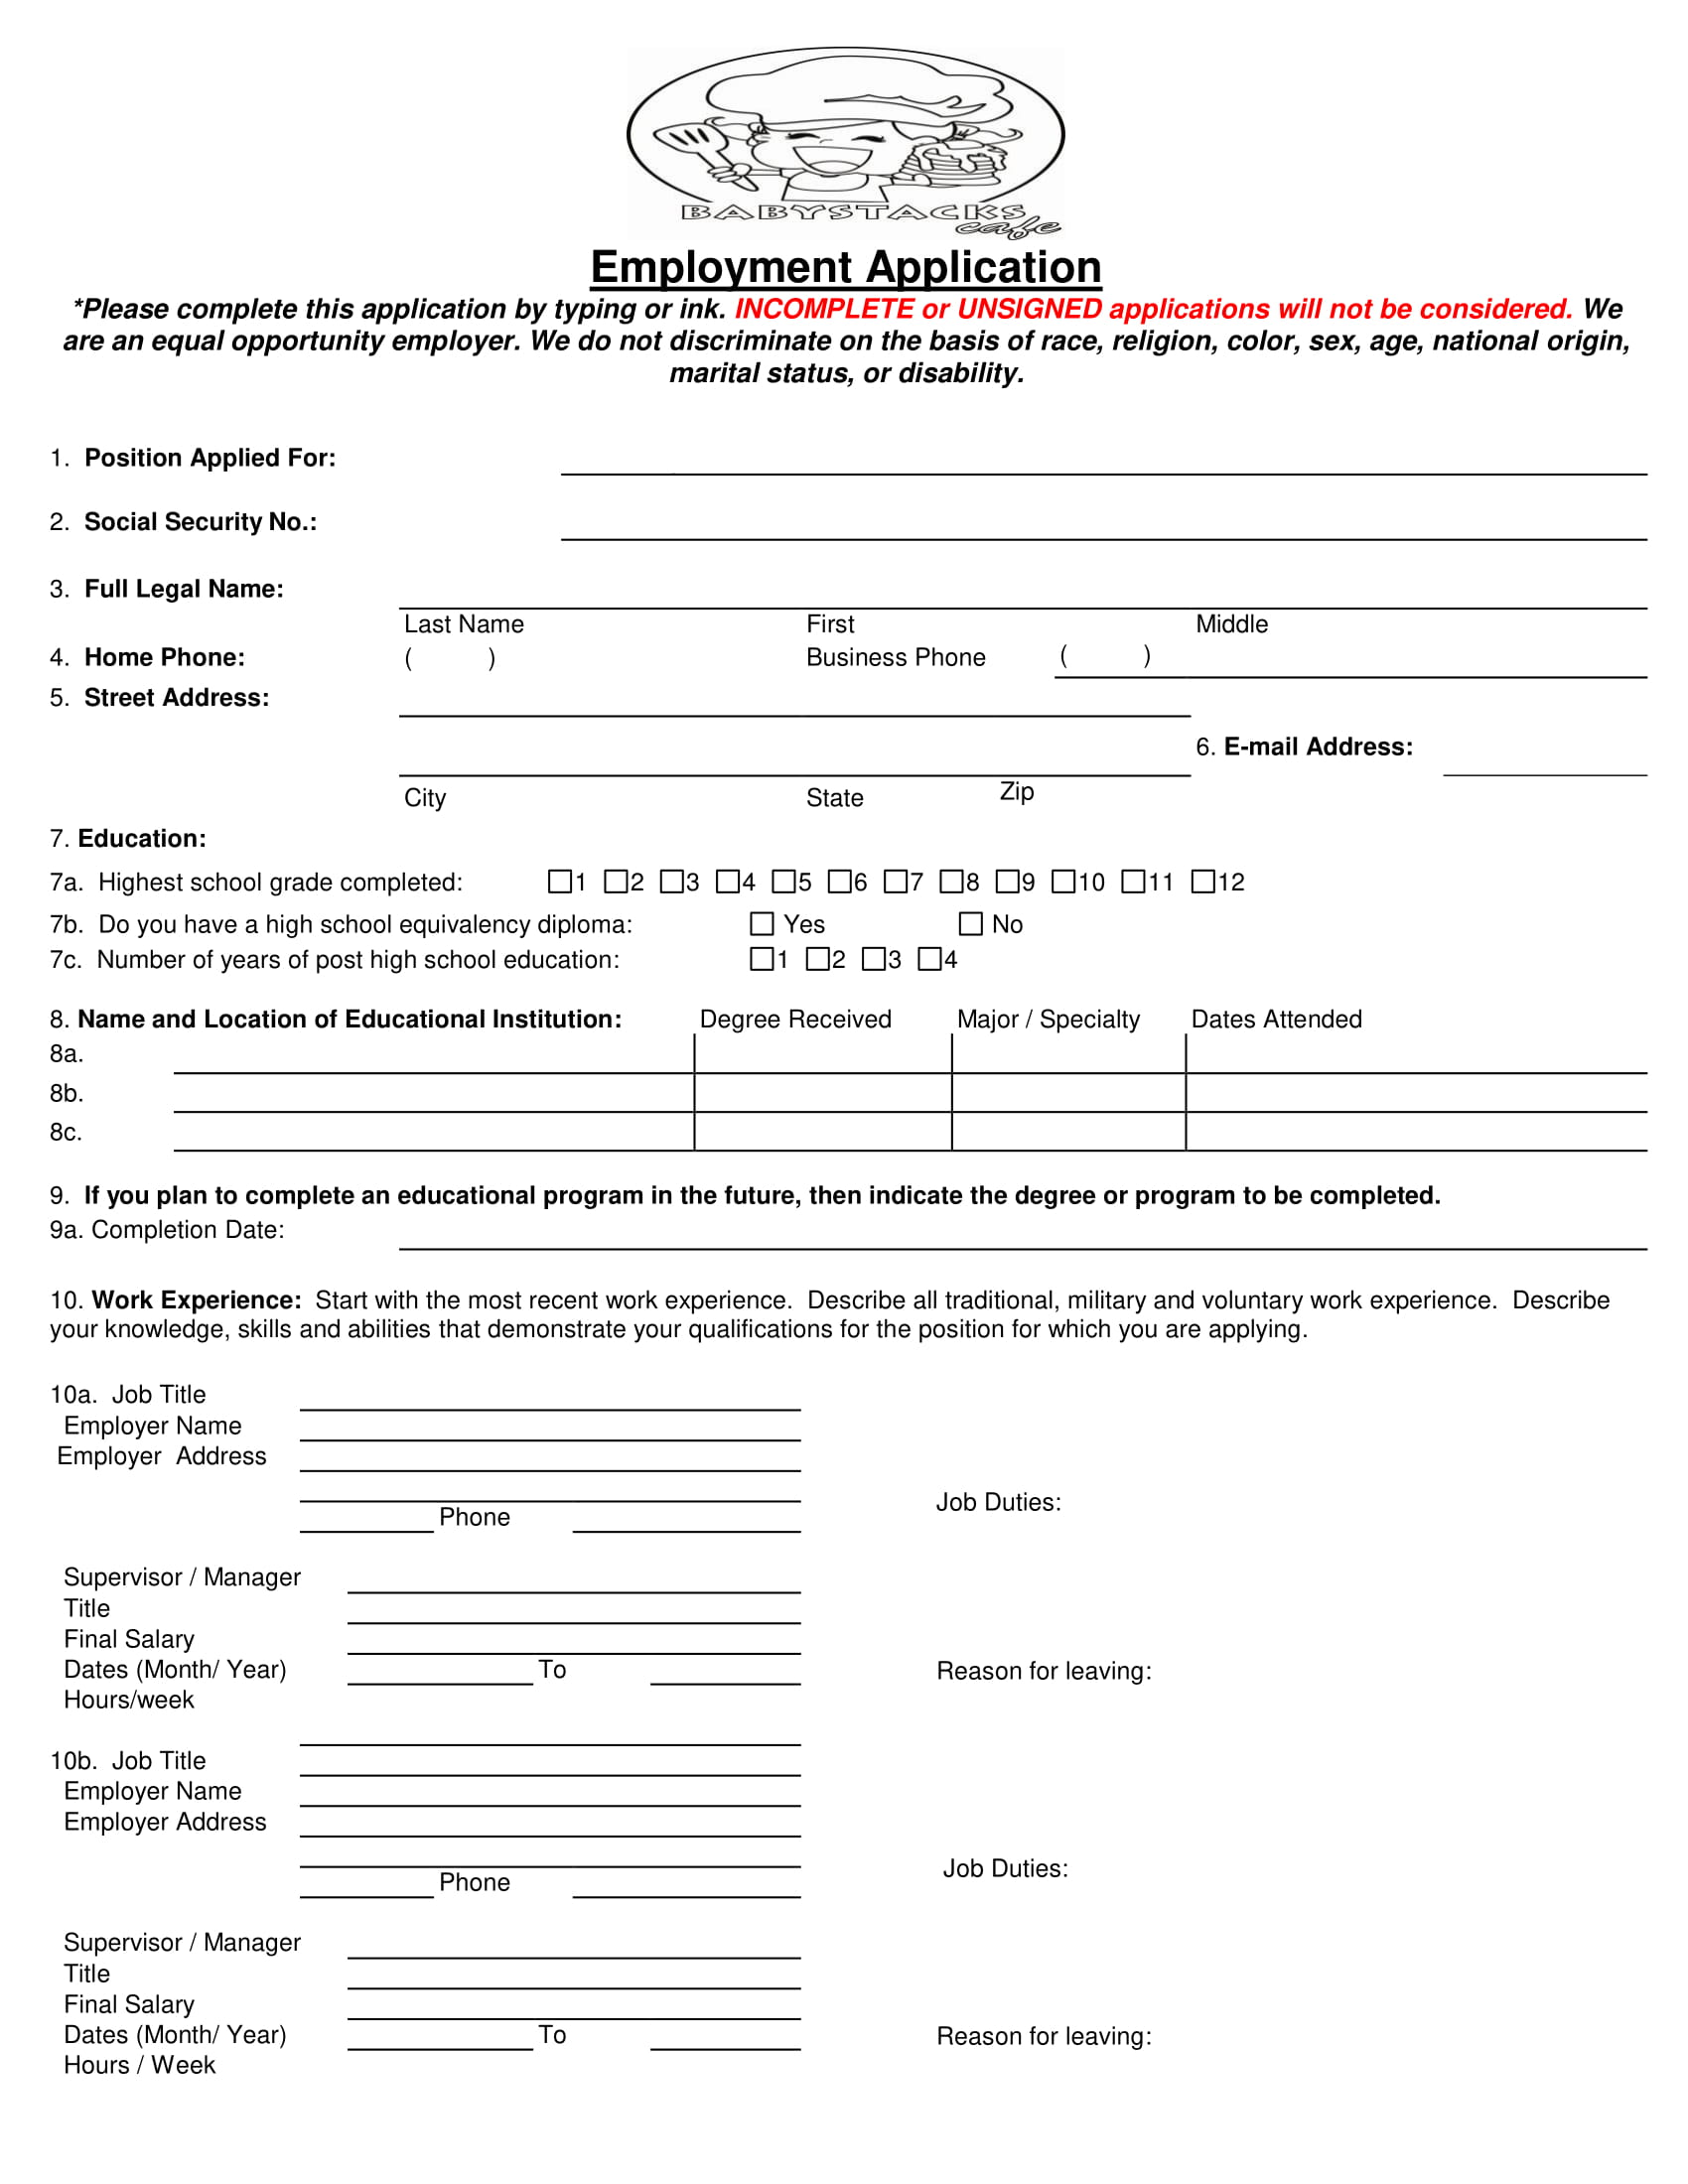 example of a job application form